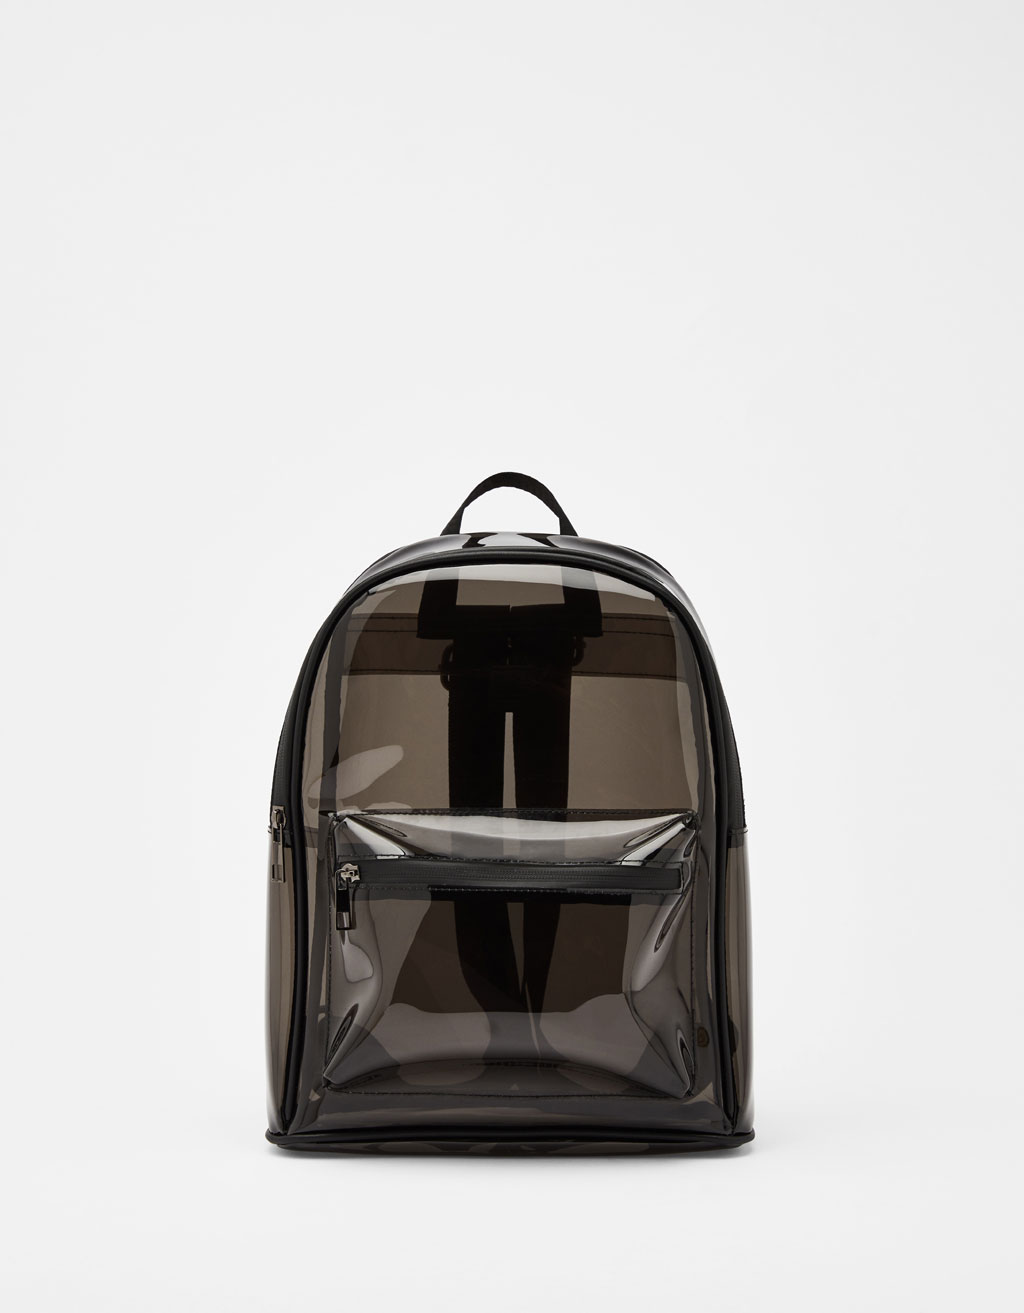 Transparent vinyl backpack